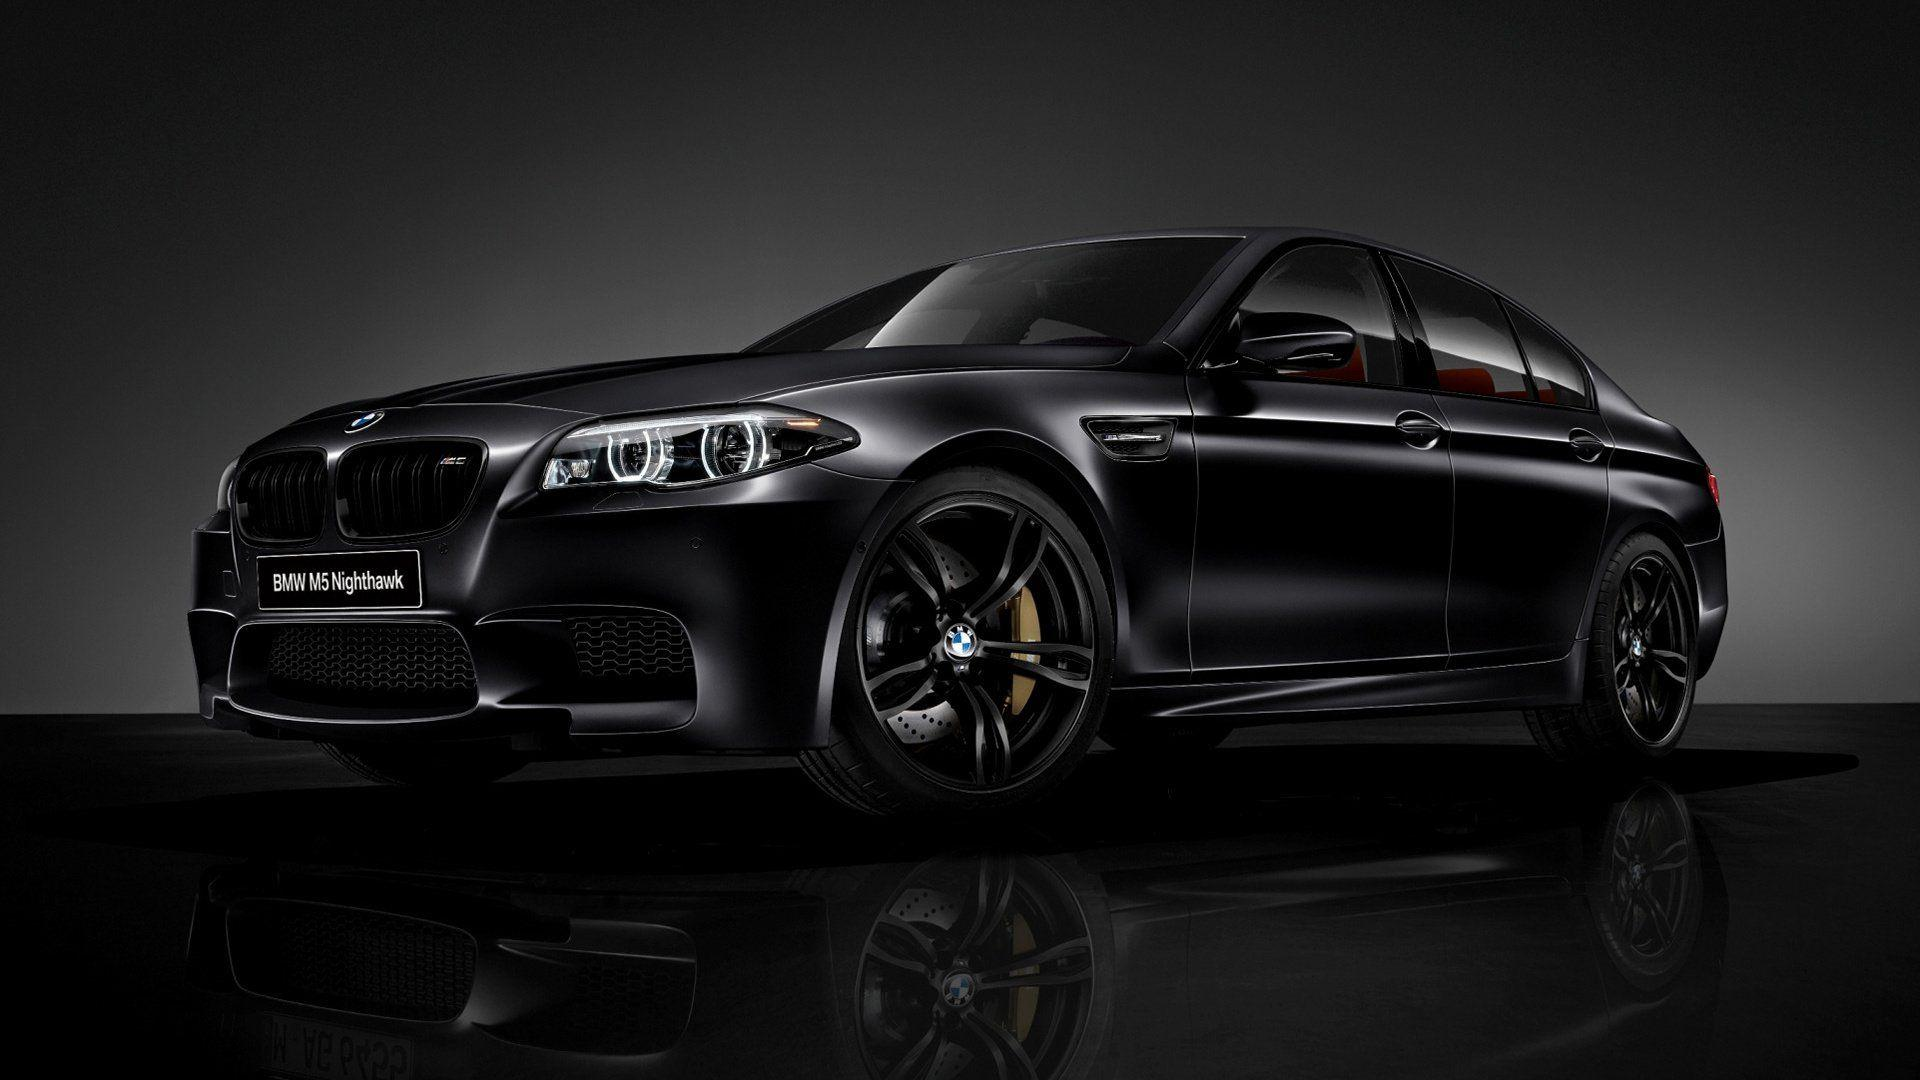 Black Bmw M5 Wallpapers Top Free Black Bmw M5 Backgrounds Wallpaperaccess